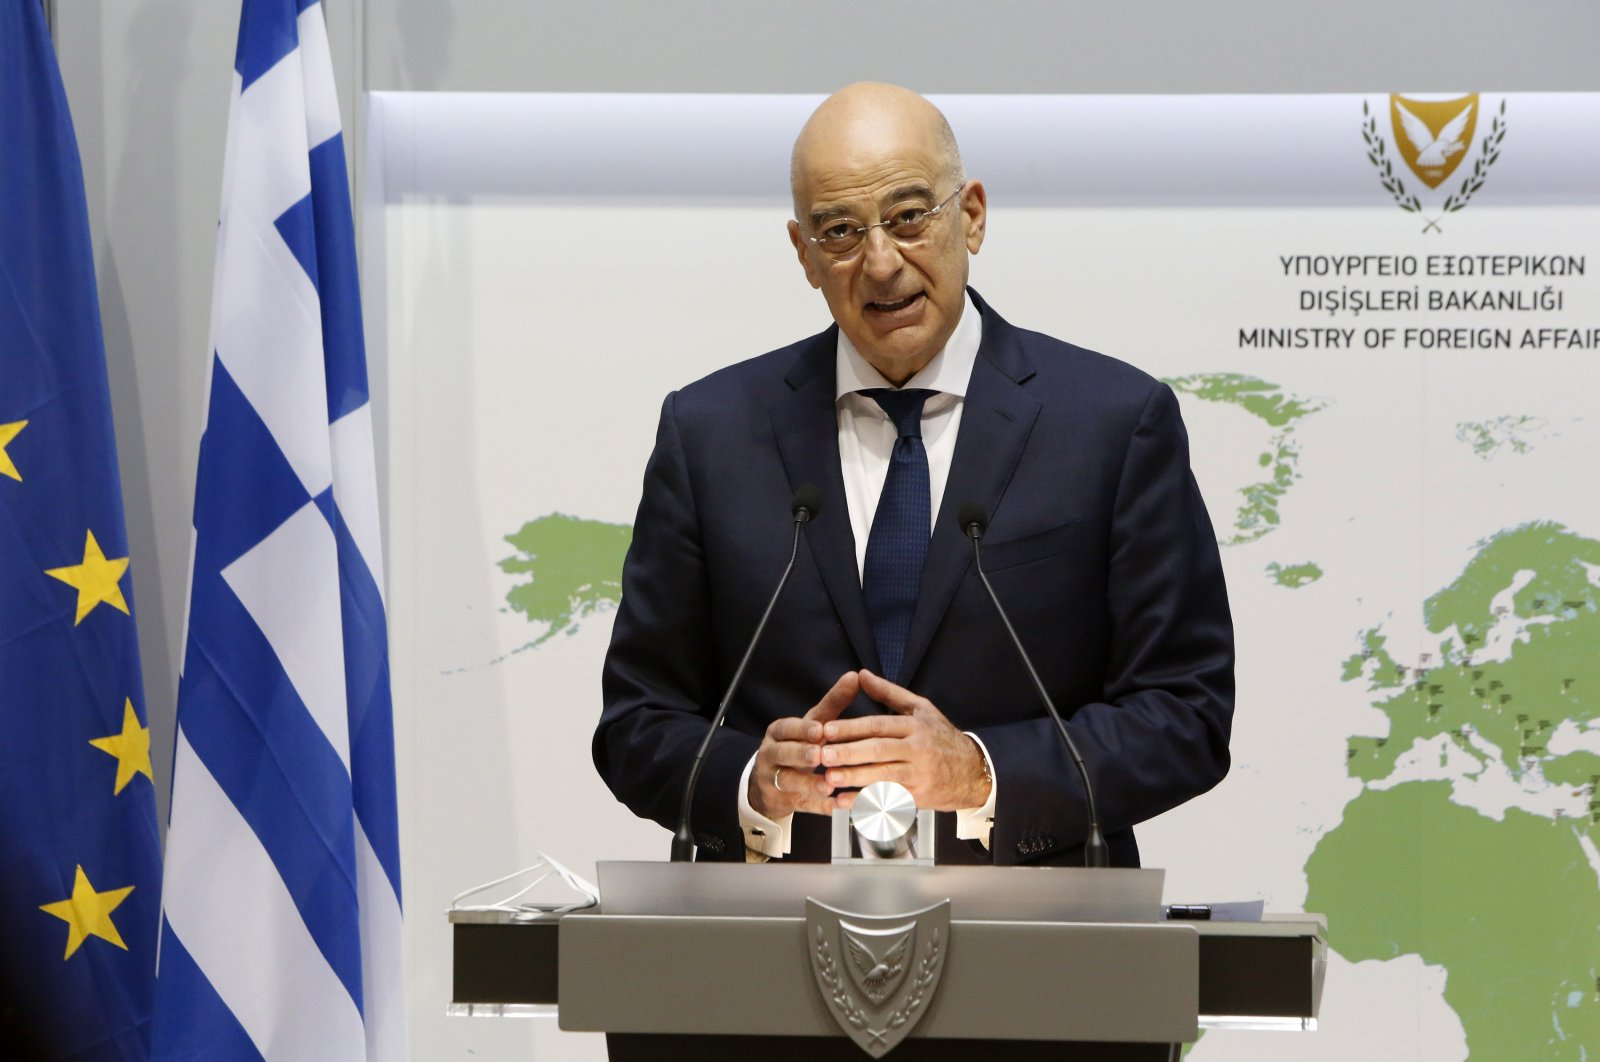 Greek Foreign Minister Nikos Dendias talks to the media during a news conference after a meeting with his Greek Cypriot counterpart Nicos Christodoulides at the foreign ministry house in the divided Cypriot capital Nicosia, Greek Cyprus, Dec. 4, 2020. (AP Photo)